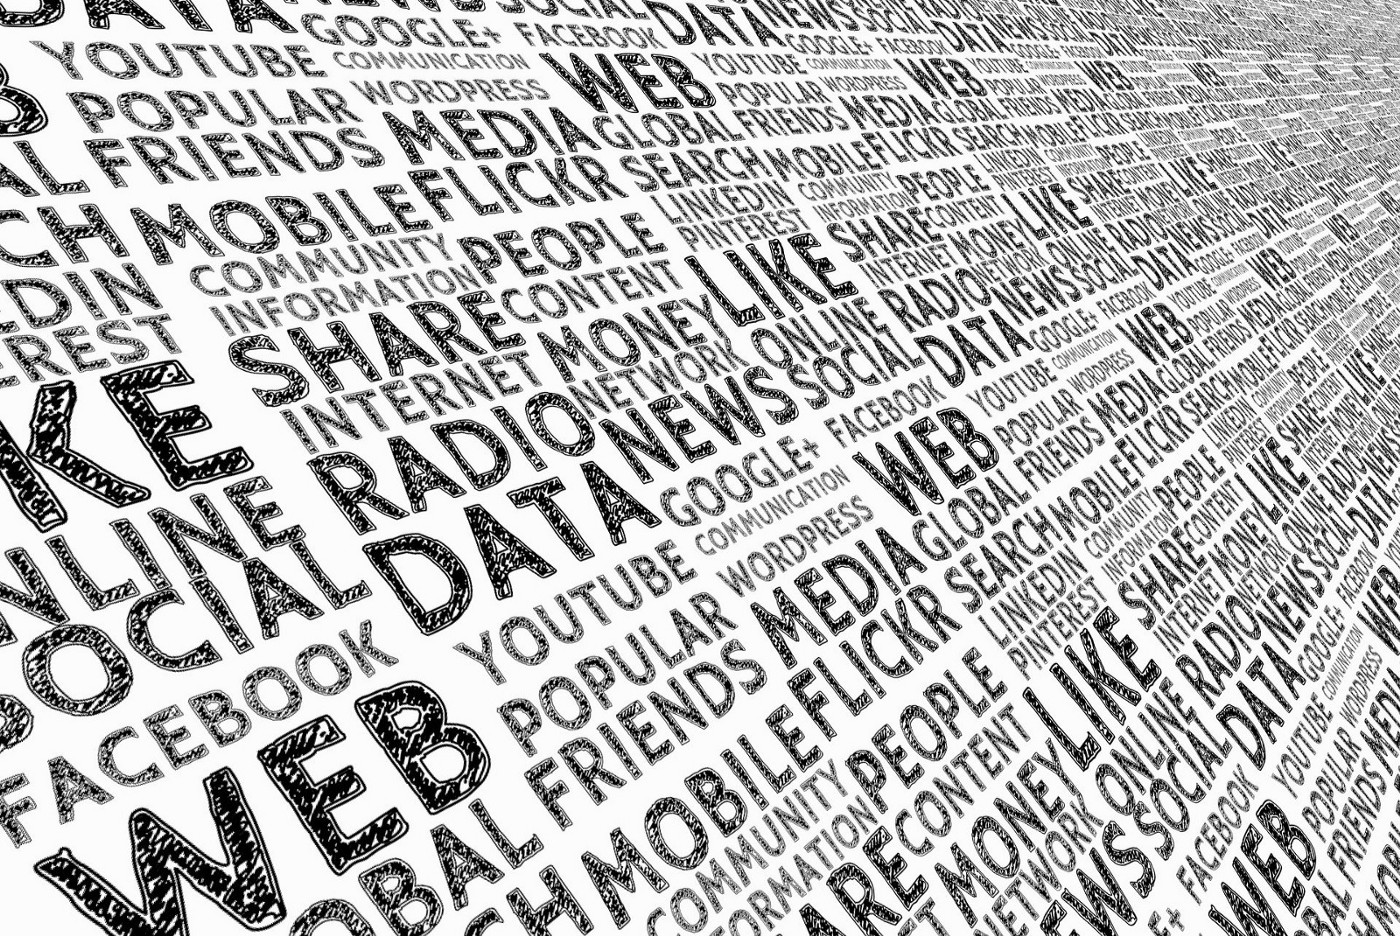 Photo by gerd altmann of words data, radio, web, etc. Photo on Dr. James Goydos 2020 article on clinical trials and data